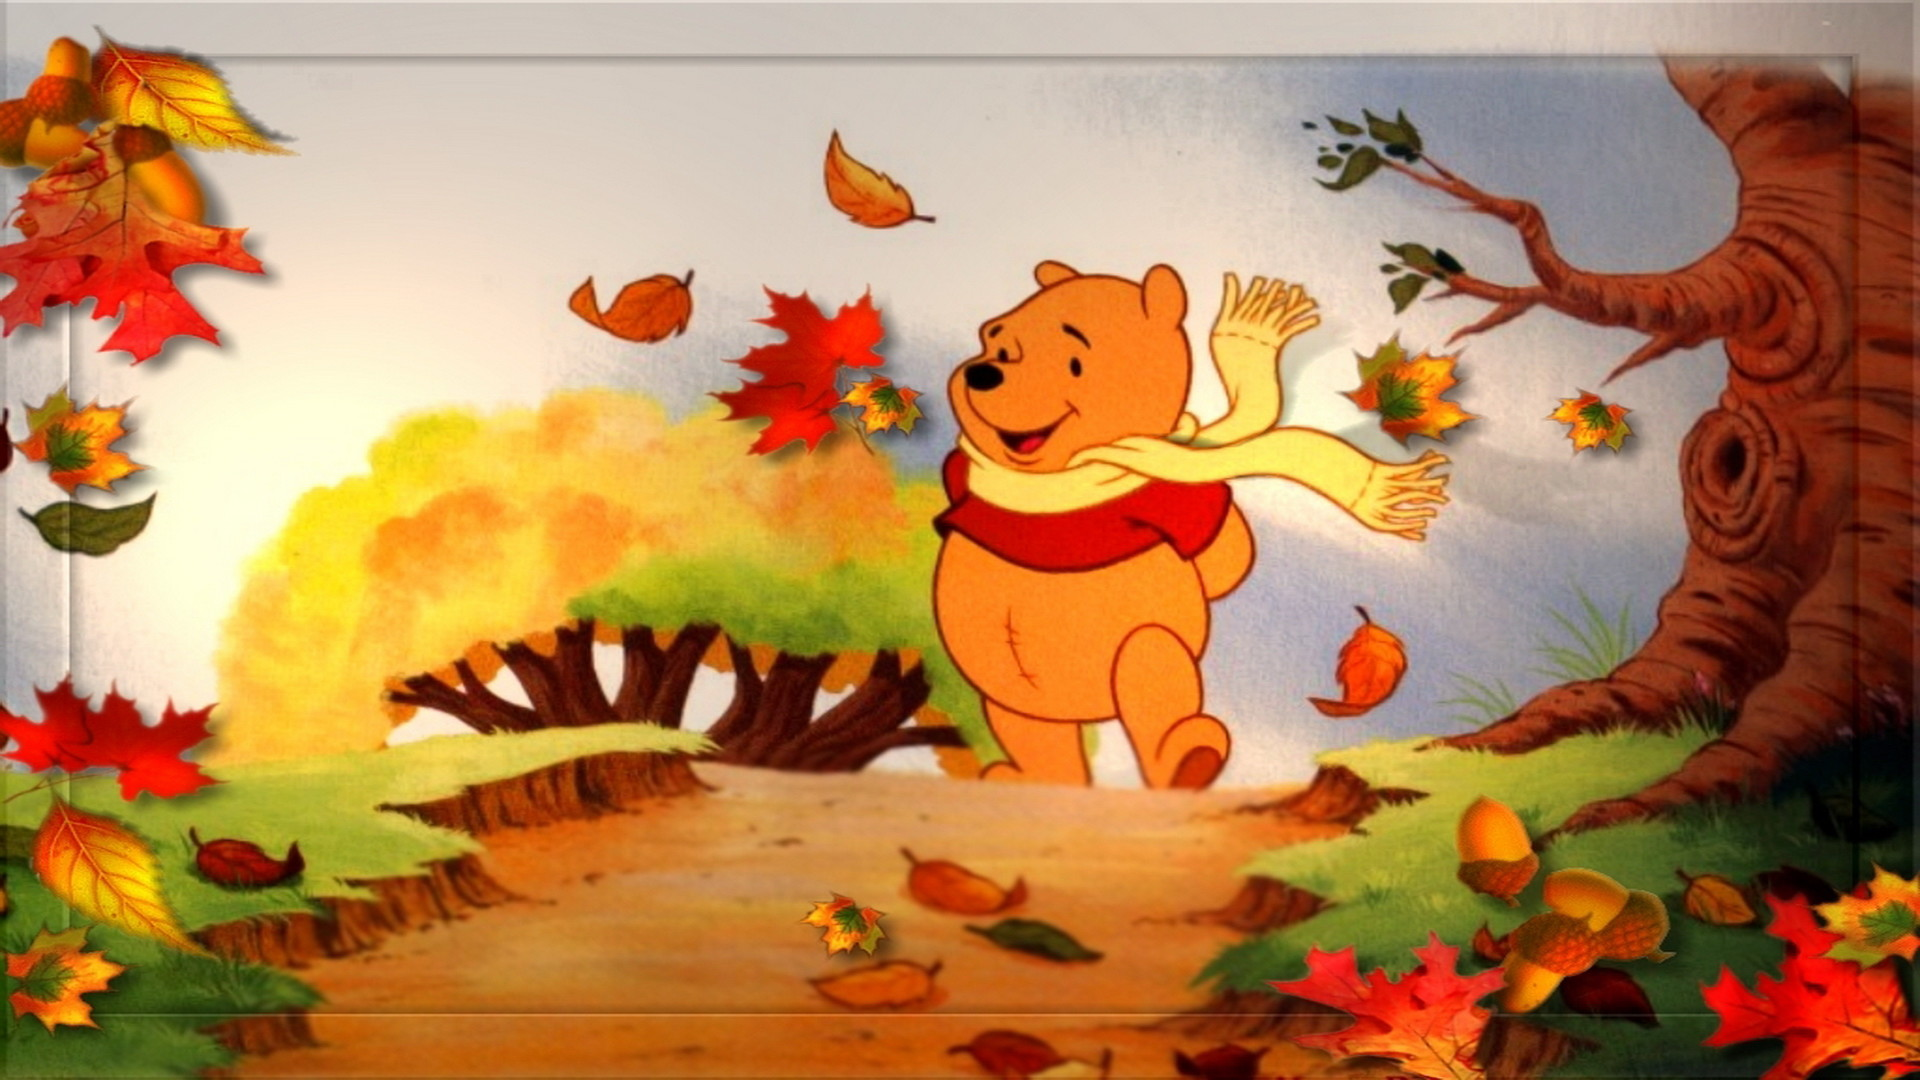 1920x1080 Disney Thanksgiving Wallpapers Background Download